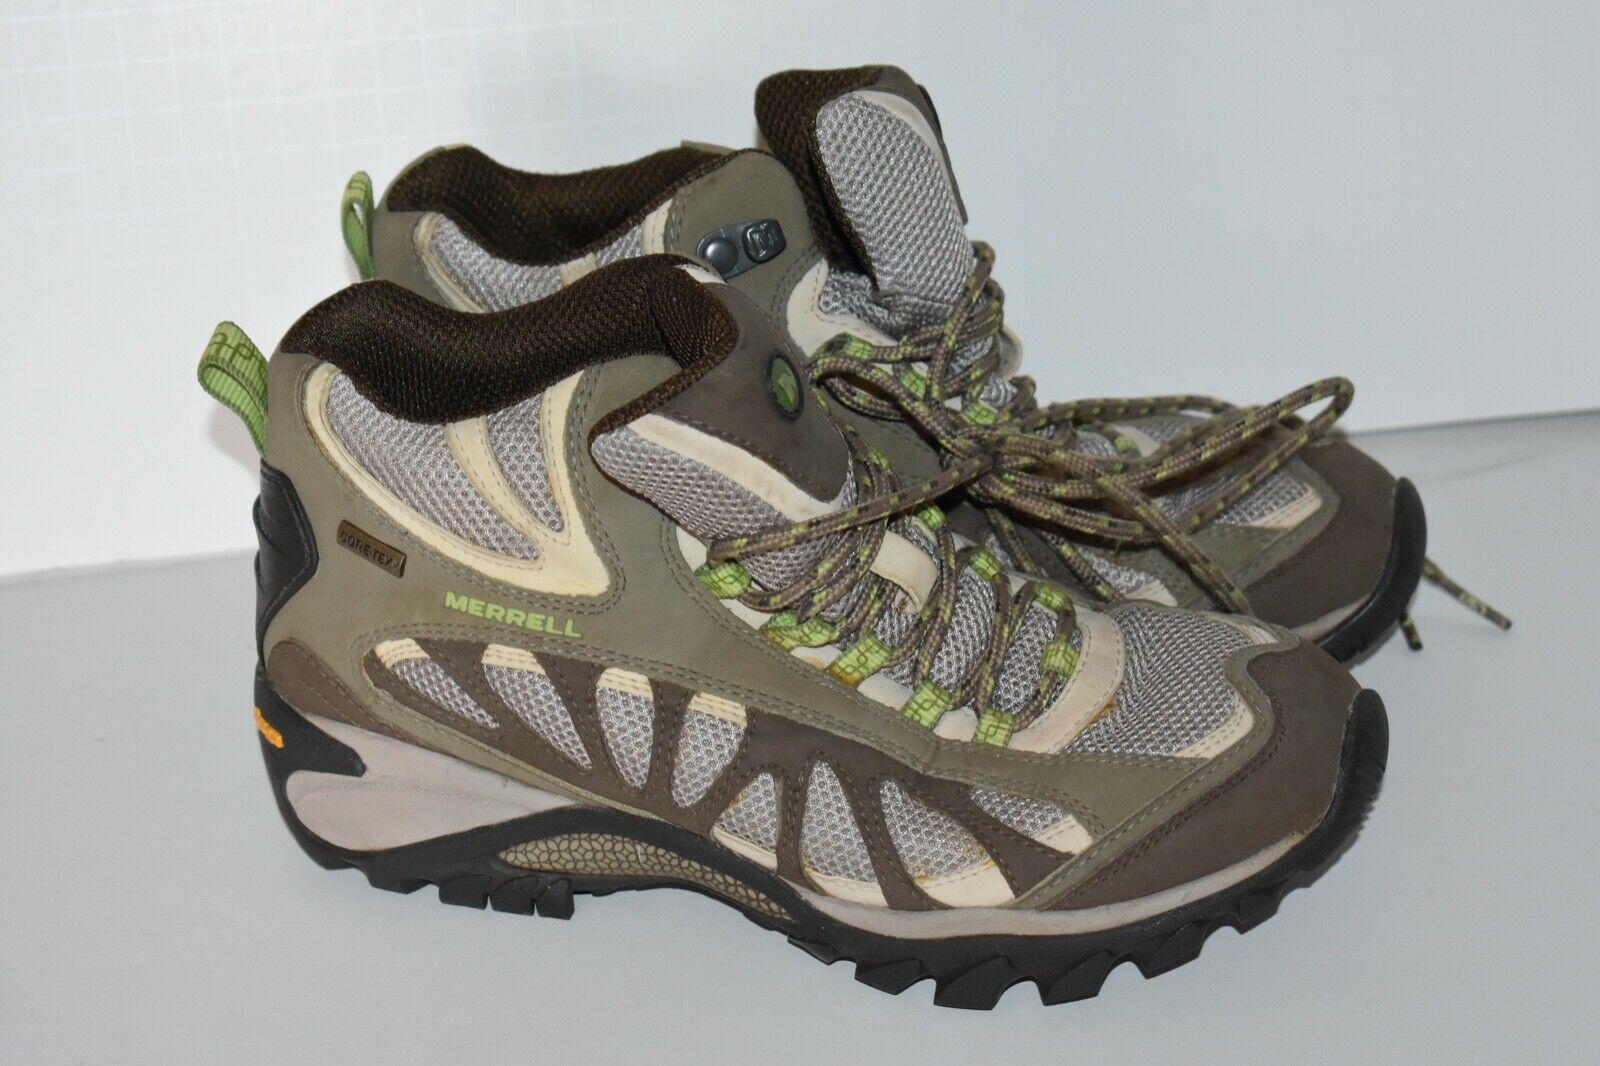 HIKING BOOTS Merrell J16042 Siren Ventilator Mid Gore-Tex Womens Ladies size 7